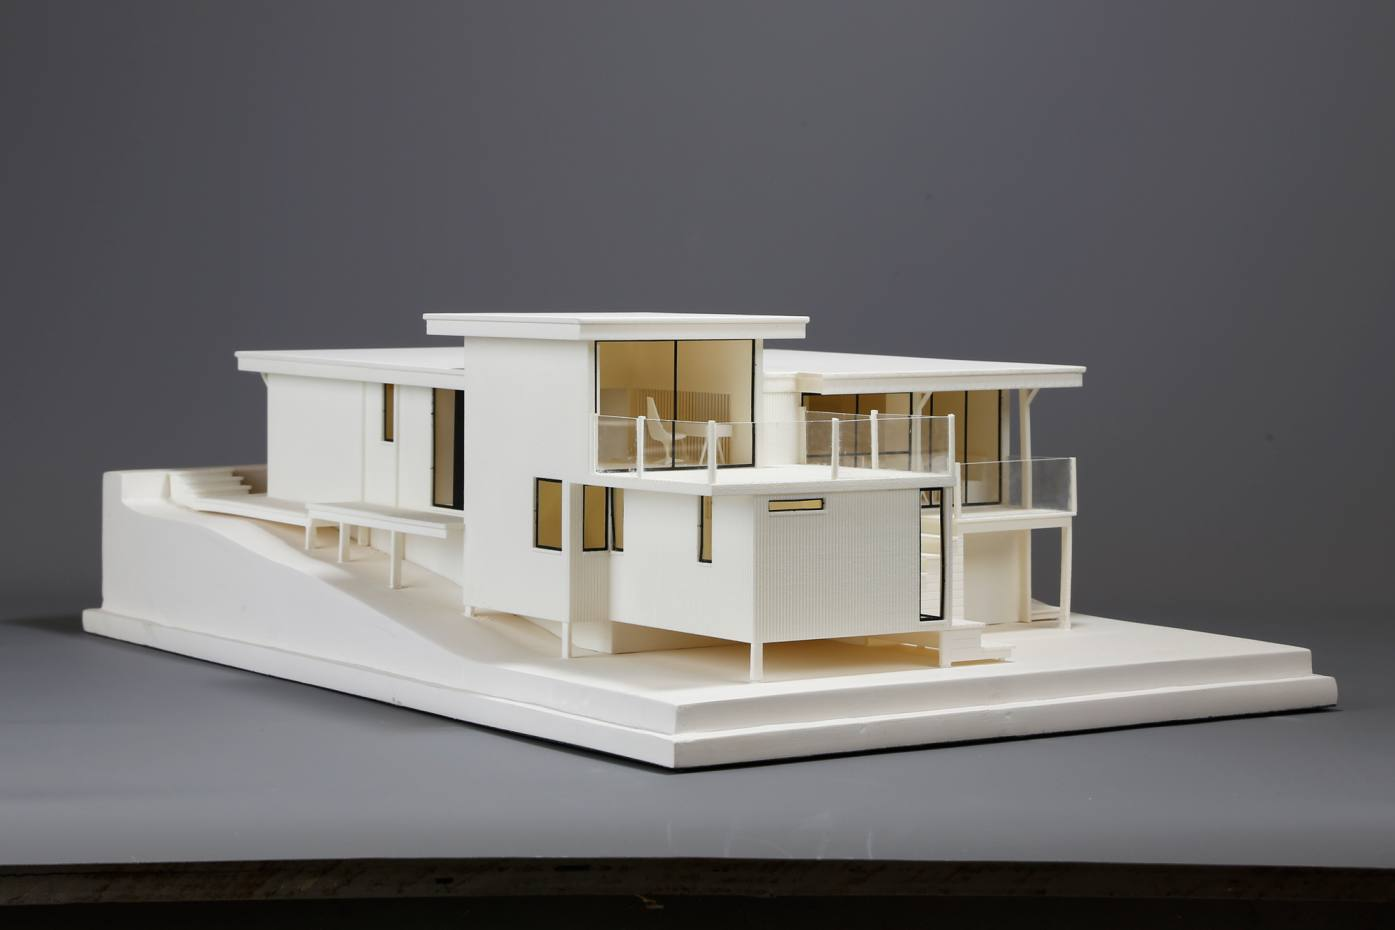 A 3d maquette model of one of walter segals south london self build houses